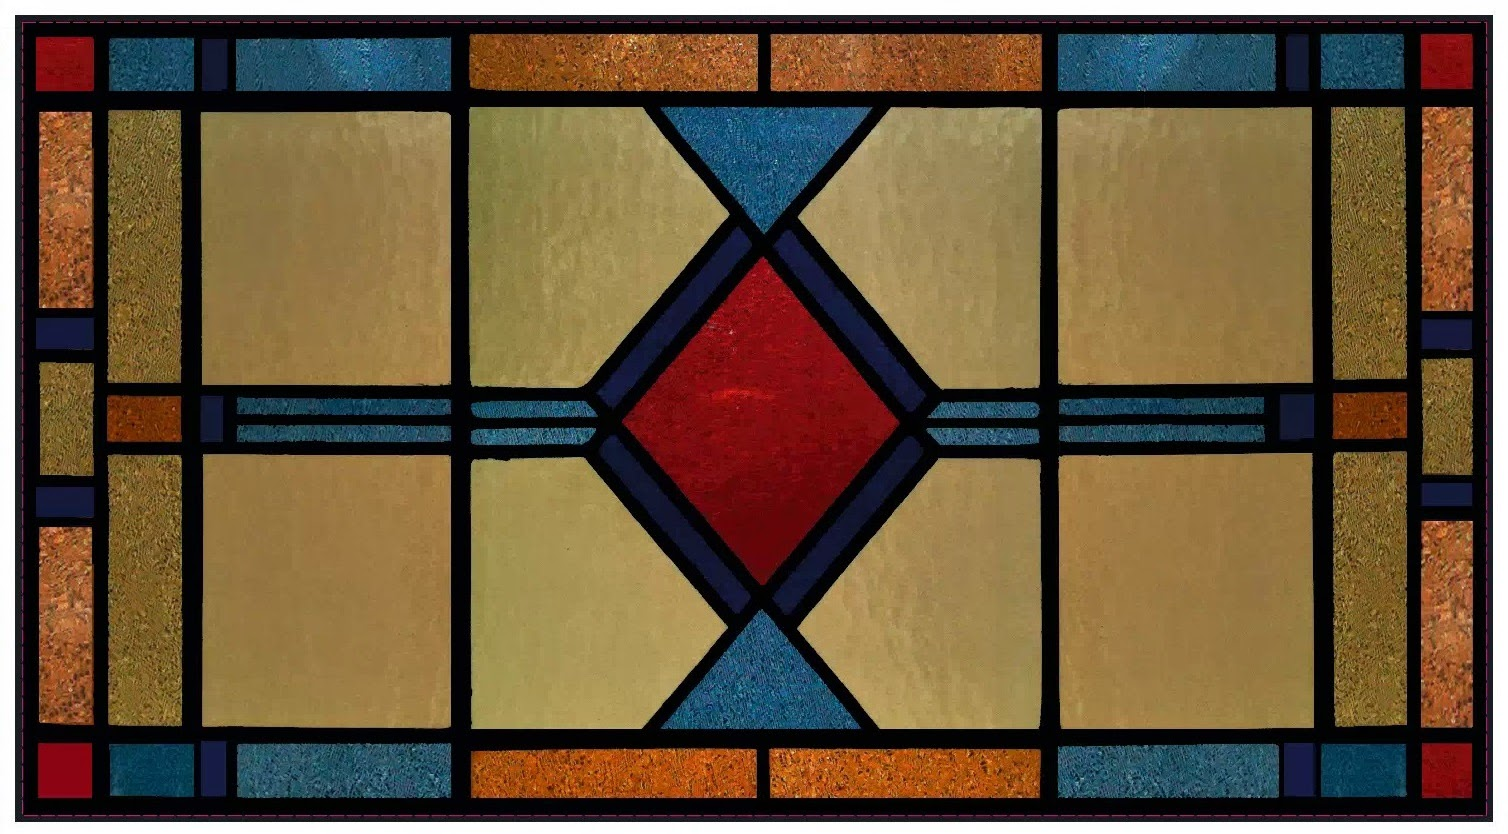 Statische Raamfolie Glas In Lood Stained Glass Window Film Applyityourself